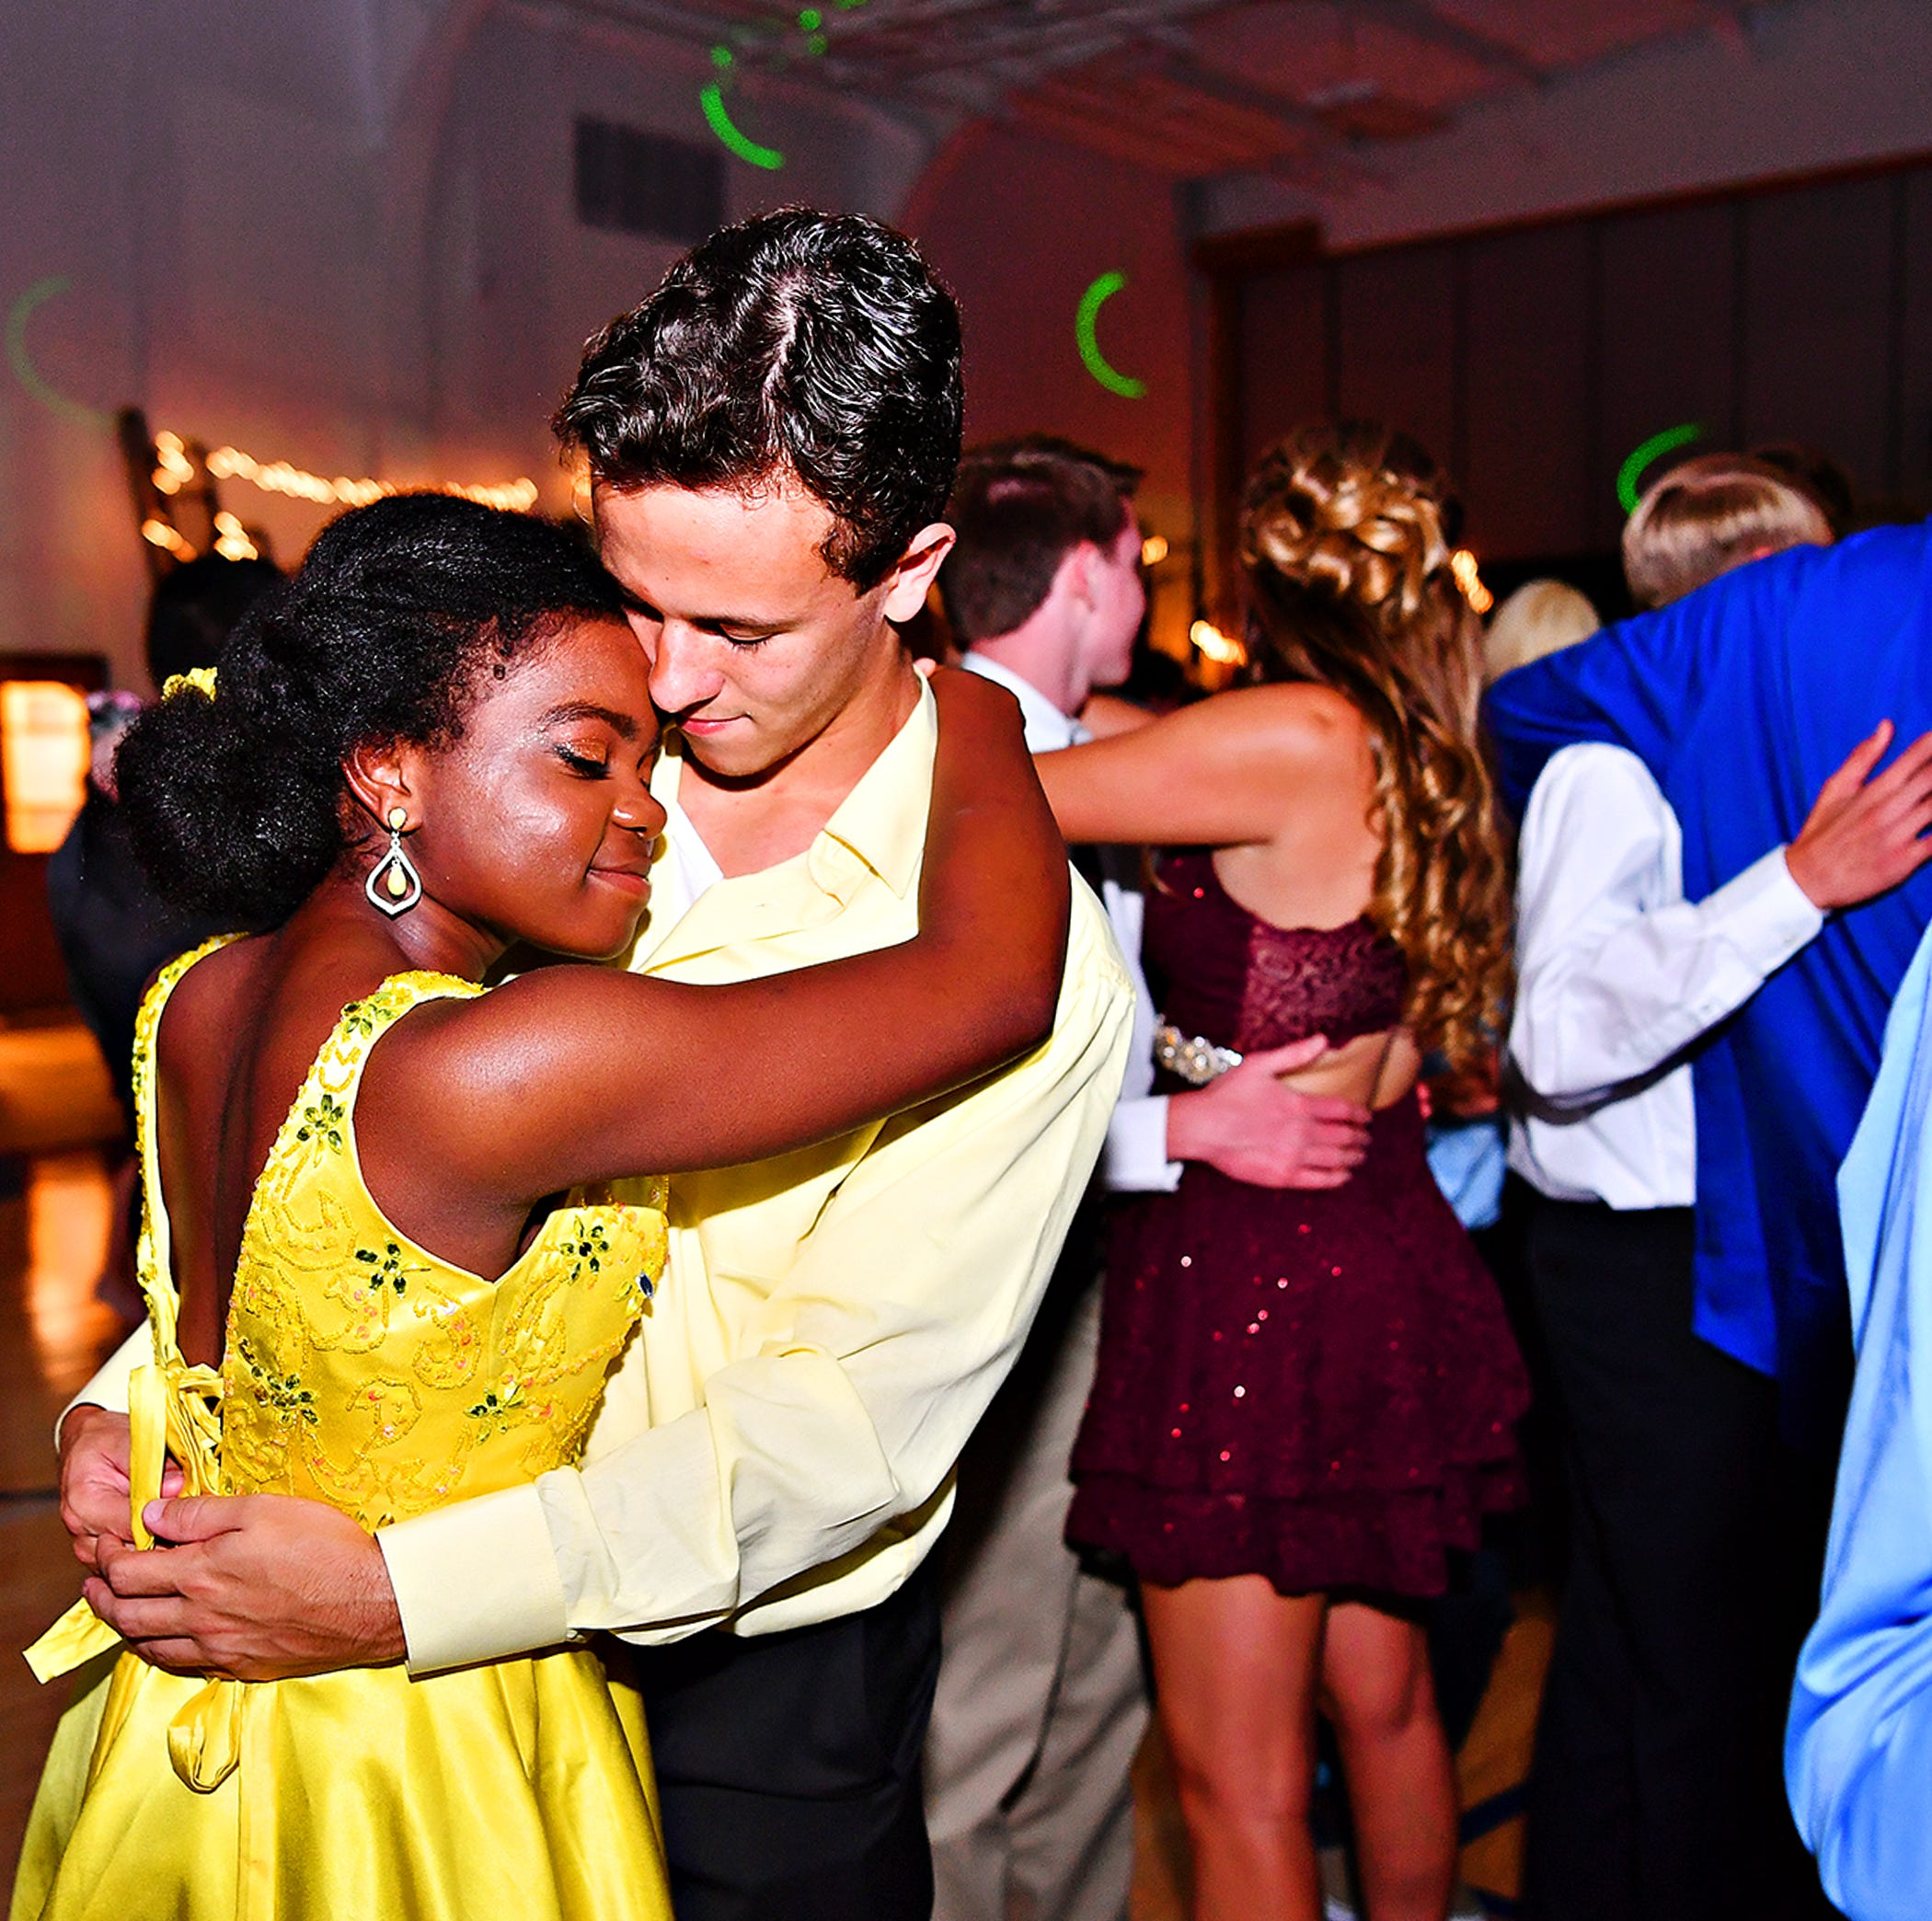 Students and their guests celebrate during the West York Area High School Homecoming Dance at West York Area High School in West Manchester Township, Saturday, Oct. 13, 2018. Dawn J. Sagert photo